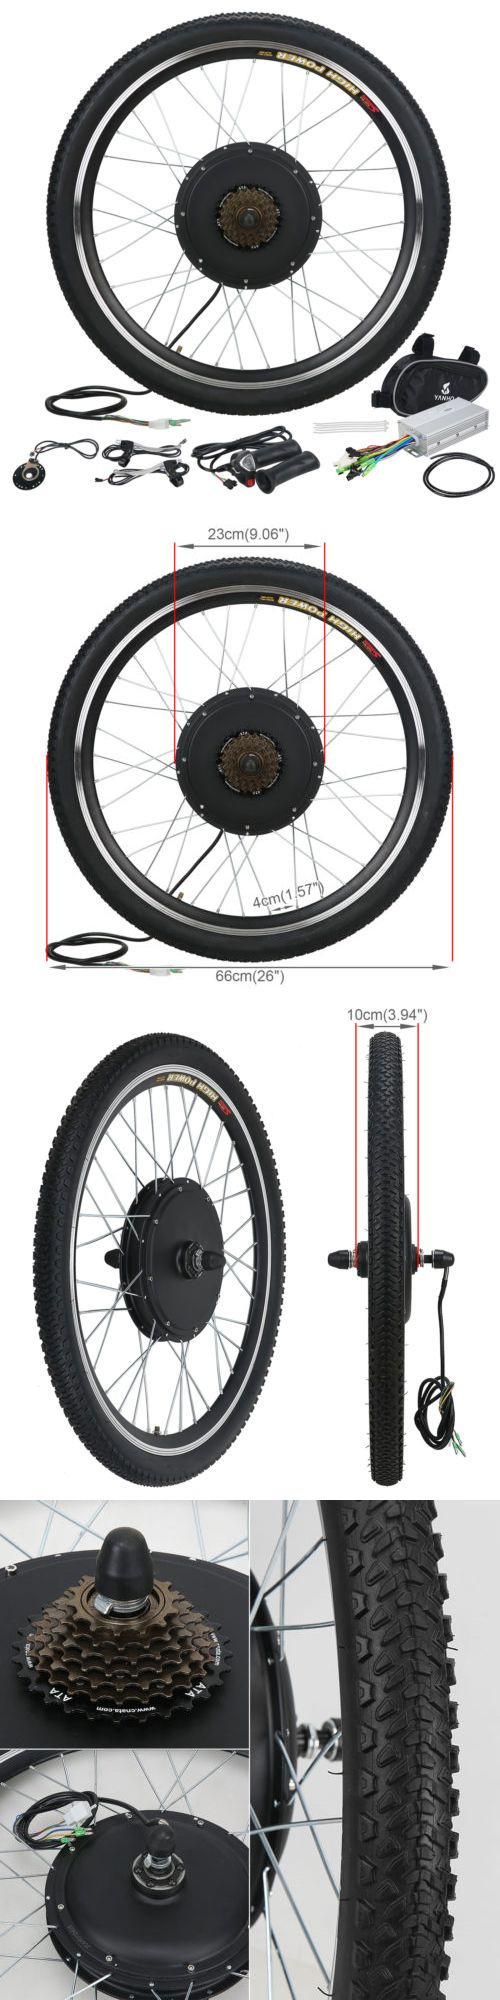 Other Bike Components and Parts 57267: 26 Electric Bicycle Rear Wheel E-Bike Conversion Kit 48V 1000W Motor Hub Speed BUY IT NOW ONLY: $153.95